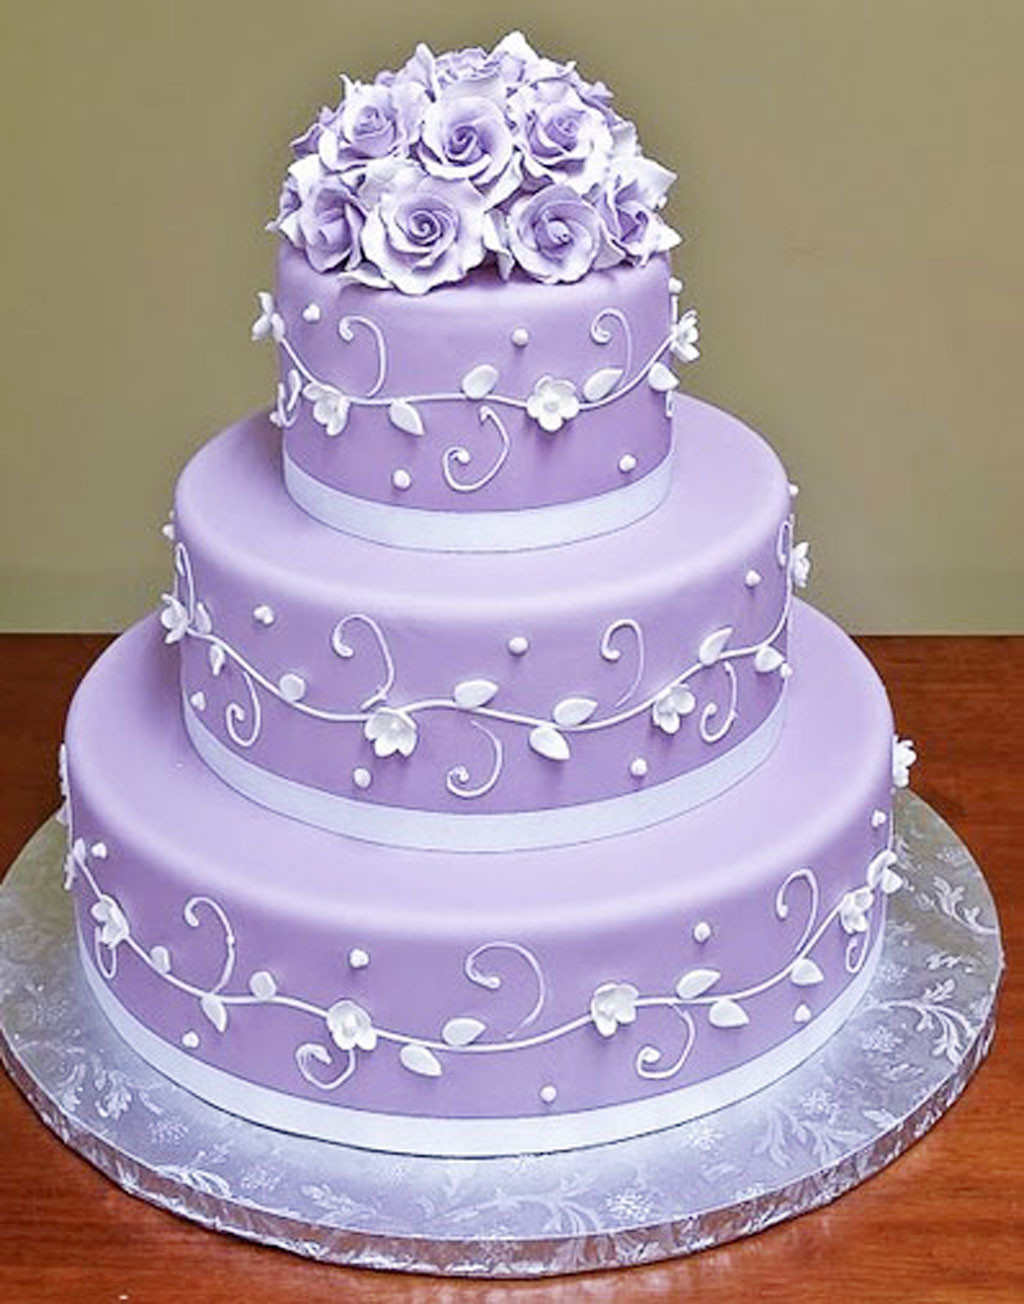 Lavender Wedding Cakes Pictures 20 Of the Best Ideas for Lavender Wedding Cakes Wedding Cake Cake Ideas by